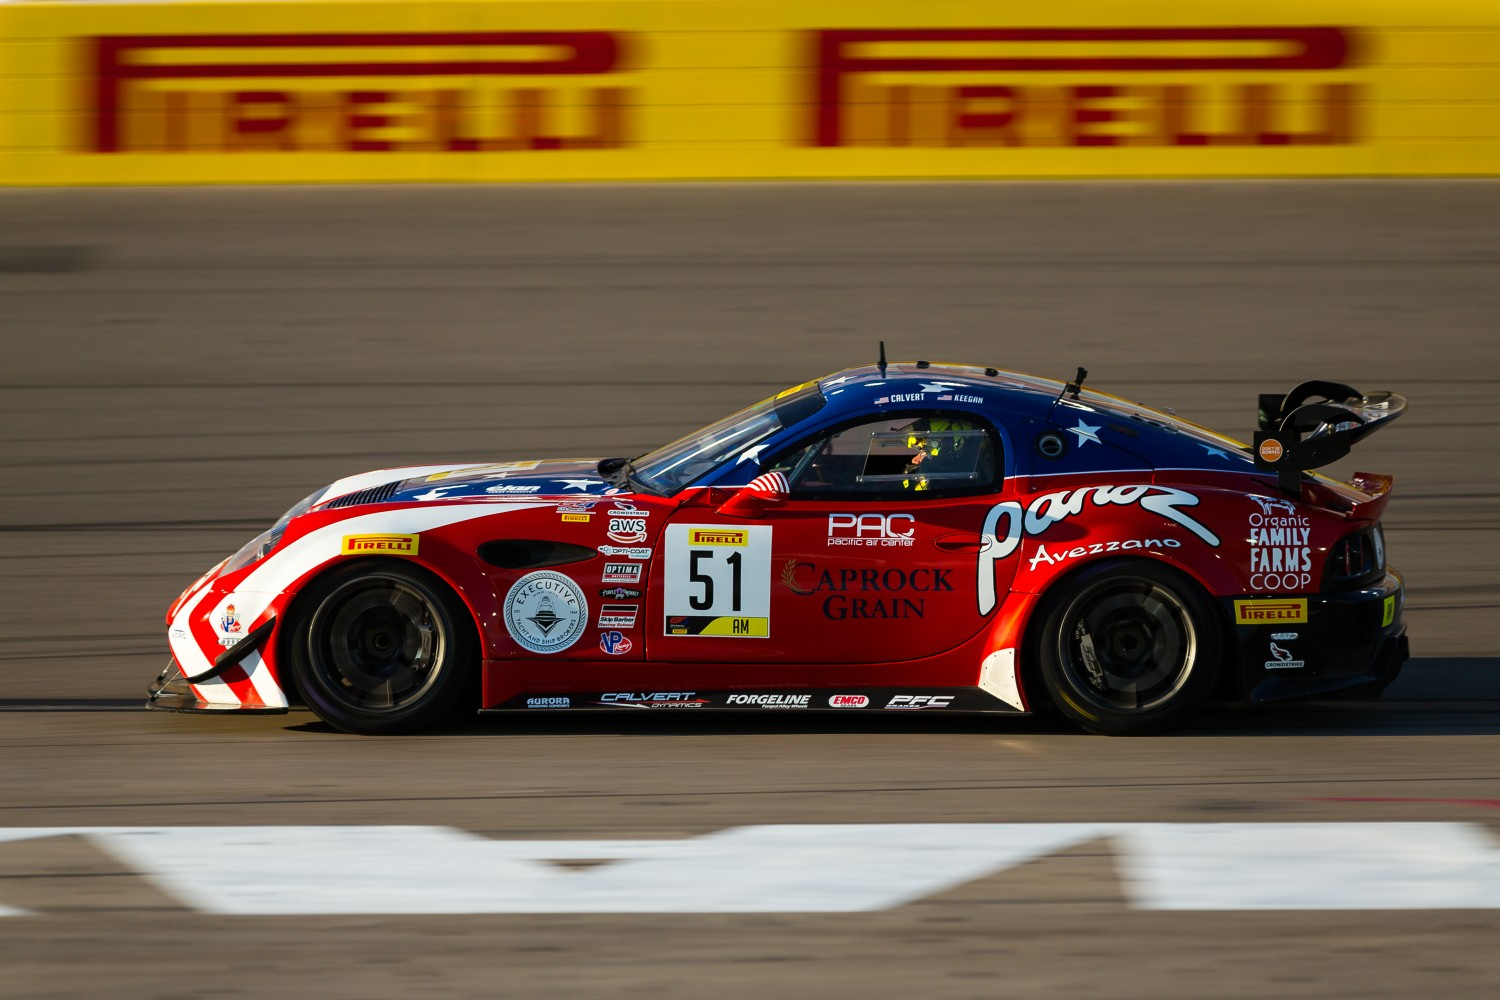 #51 Panoz Avezzano GT of Preston Calvert and Matthew Keegan with Team Panoz Racing  2019 Blancpain GT World Challenge America - Las Vegas, Las Vegas NV | Fabian Lagunas/SRO